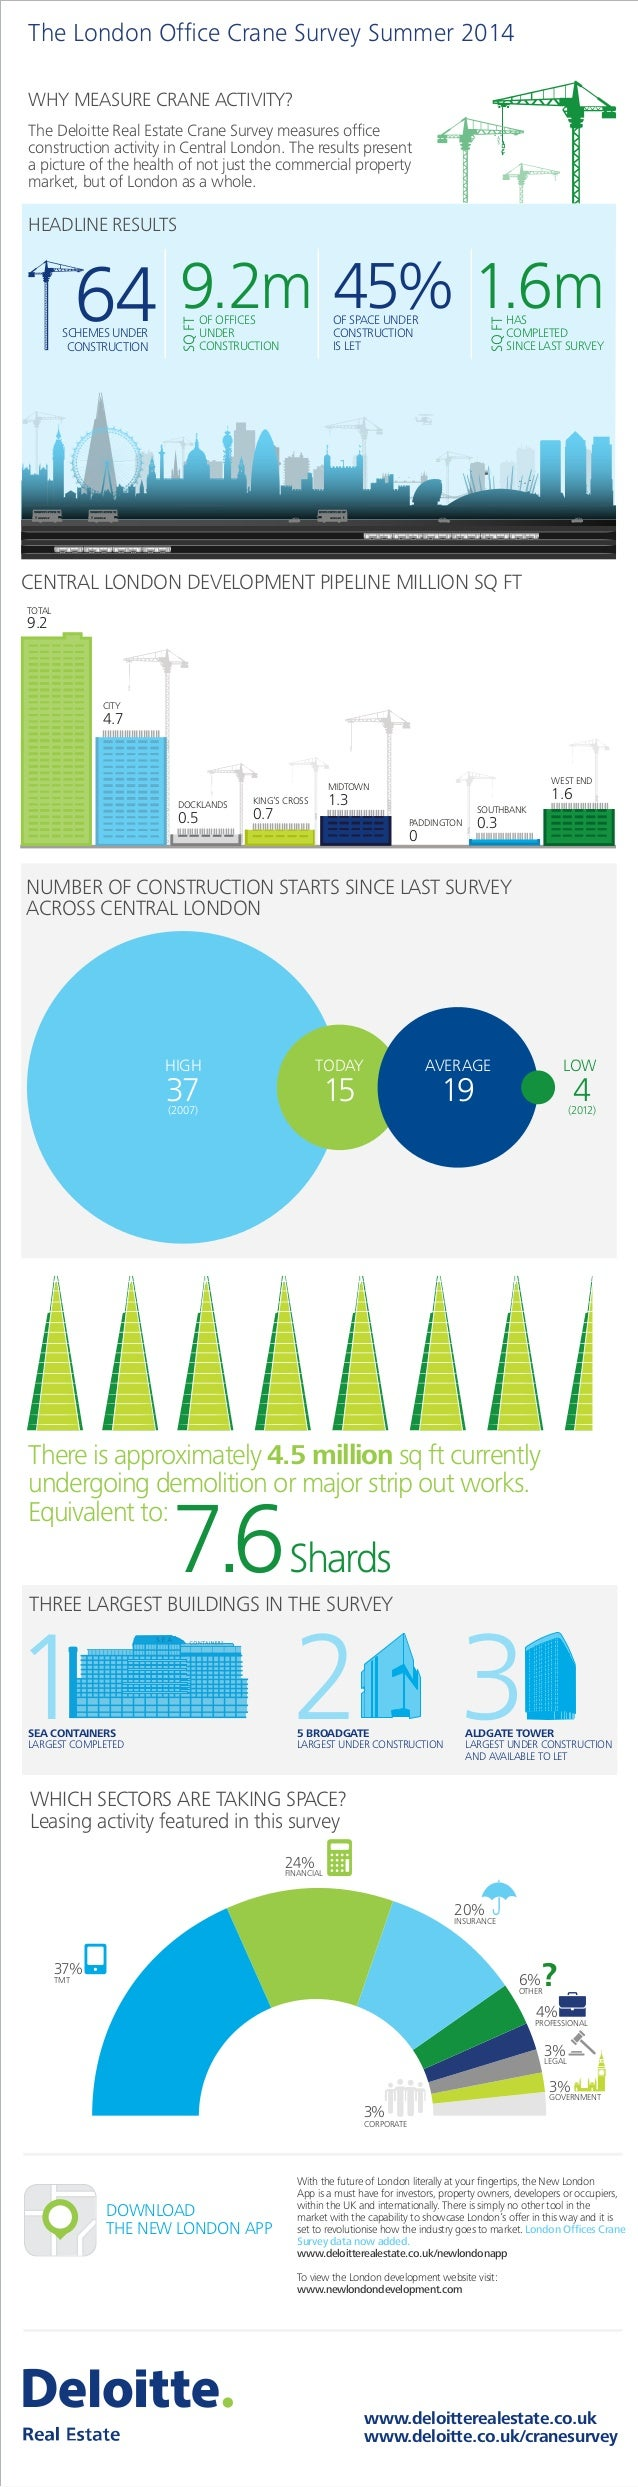 The Deloitte London Office Crane Survey: Summer 2014